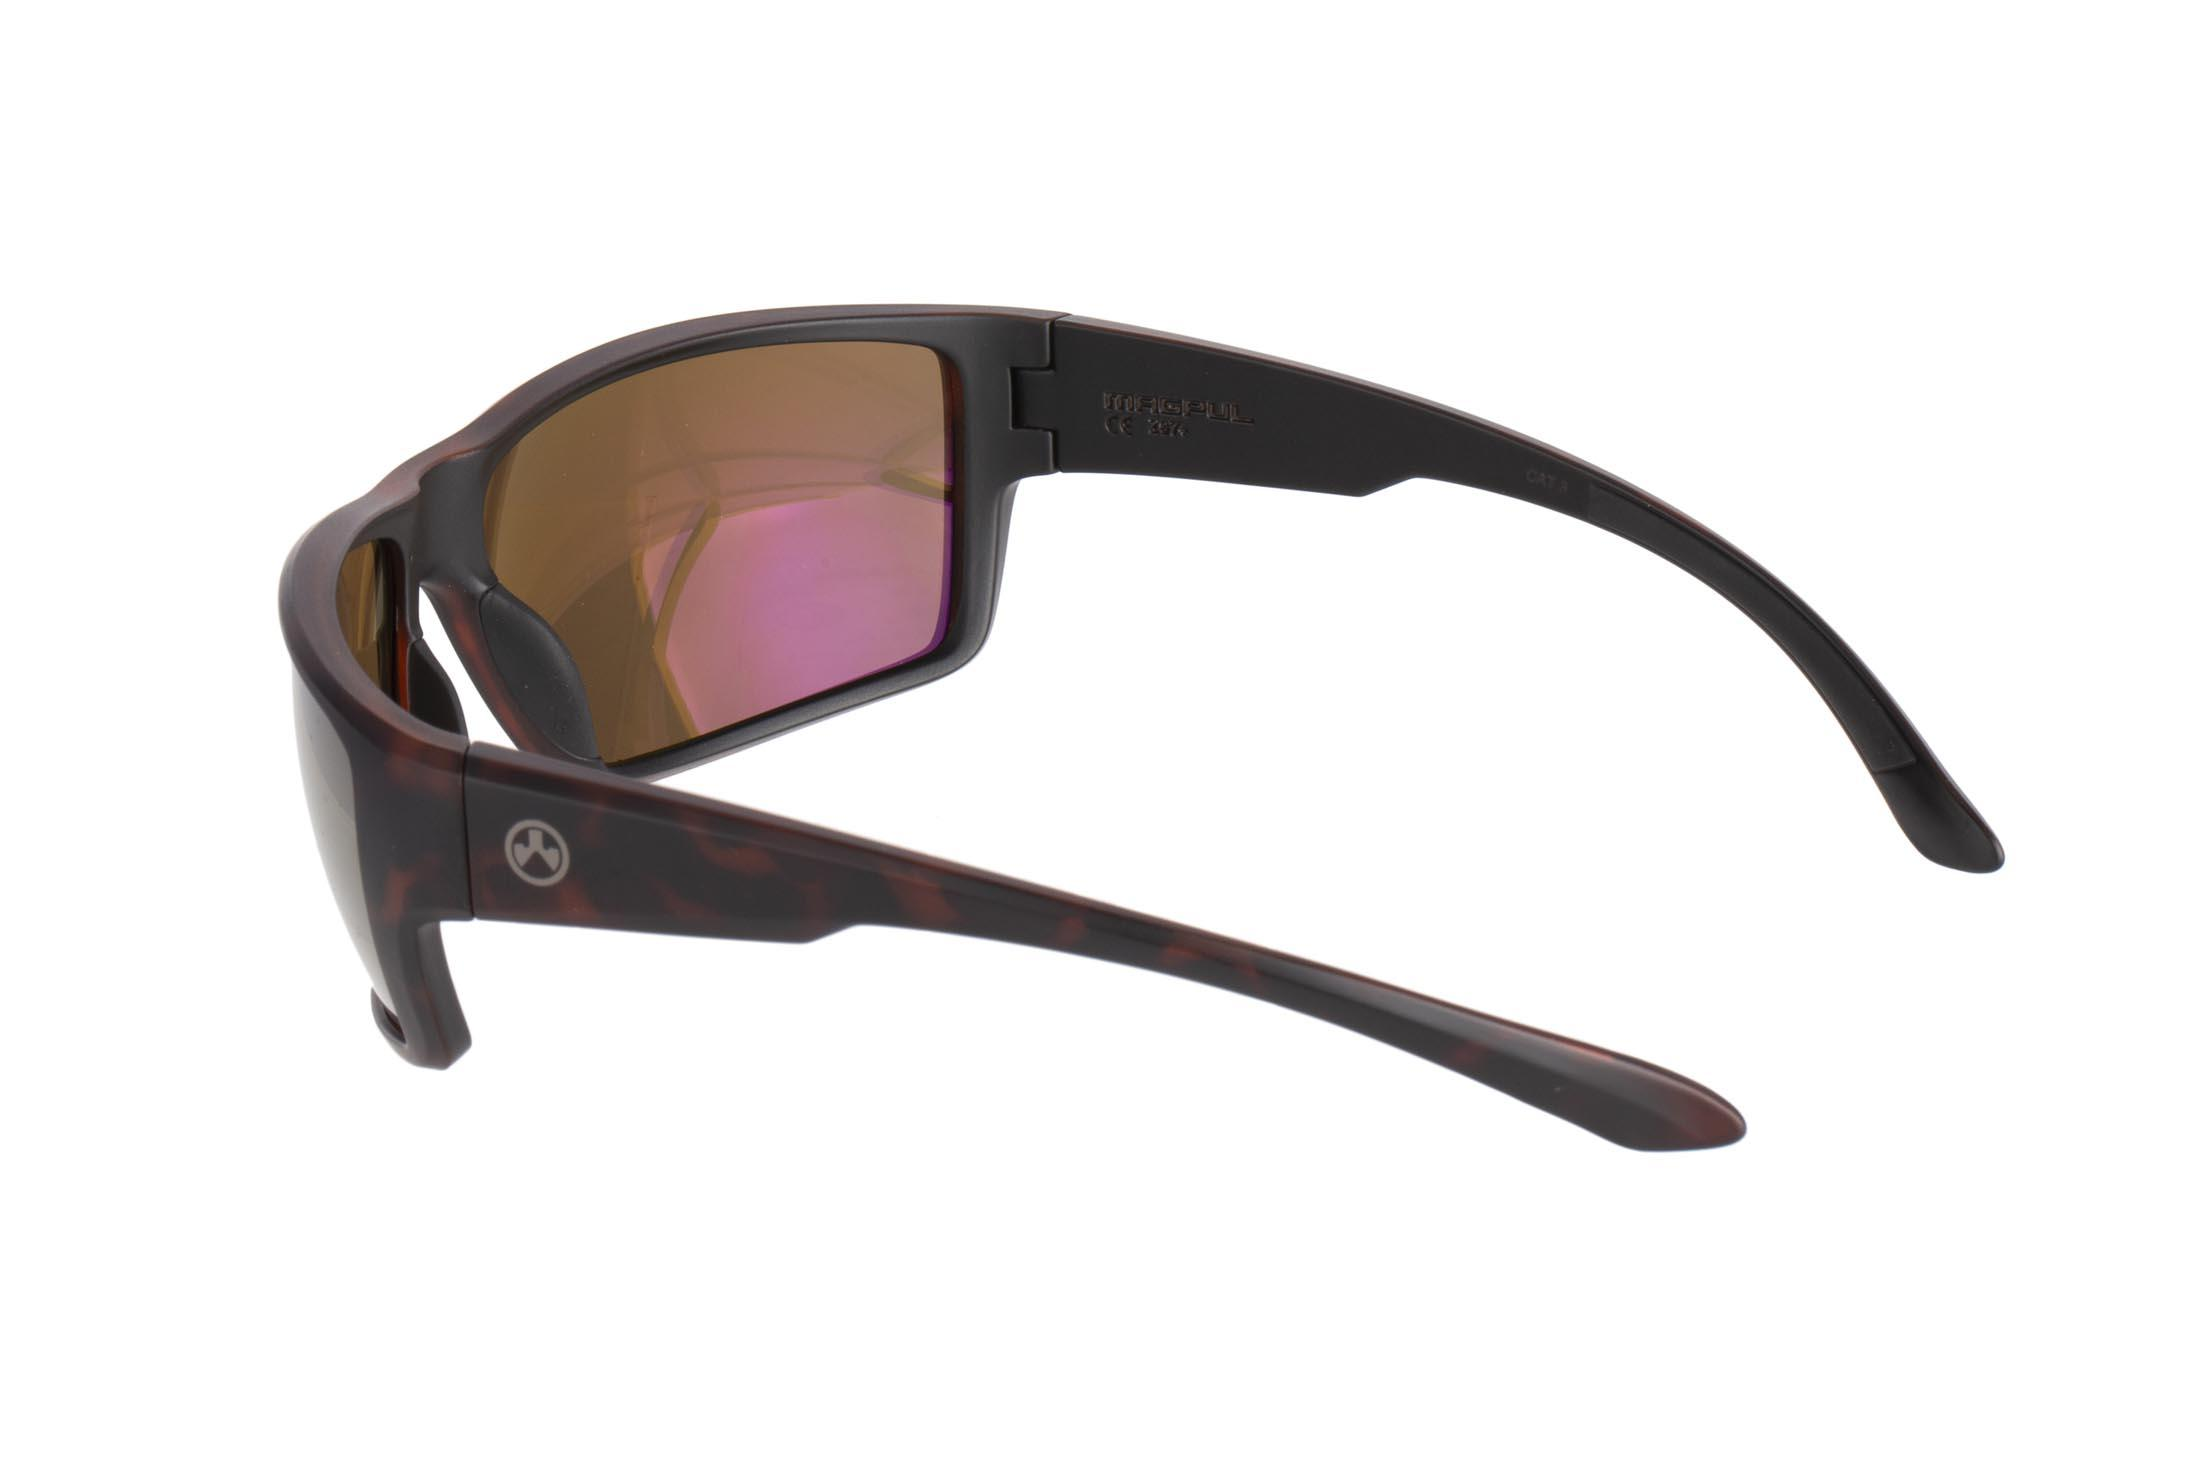 Magpul Terrain tortoise frame eye protection with polarized bronze/gold lenses are designed to complement over-ear hearing protection